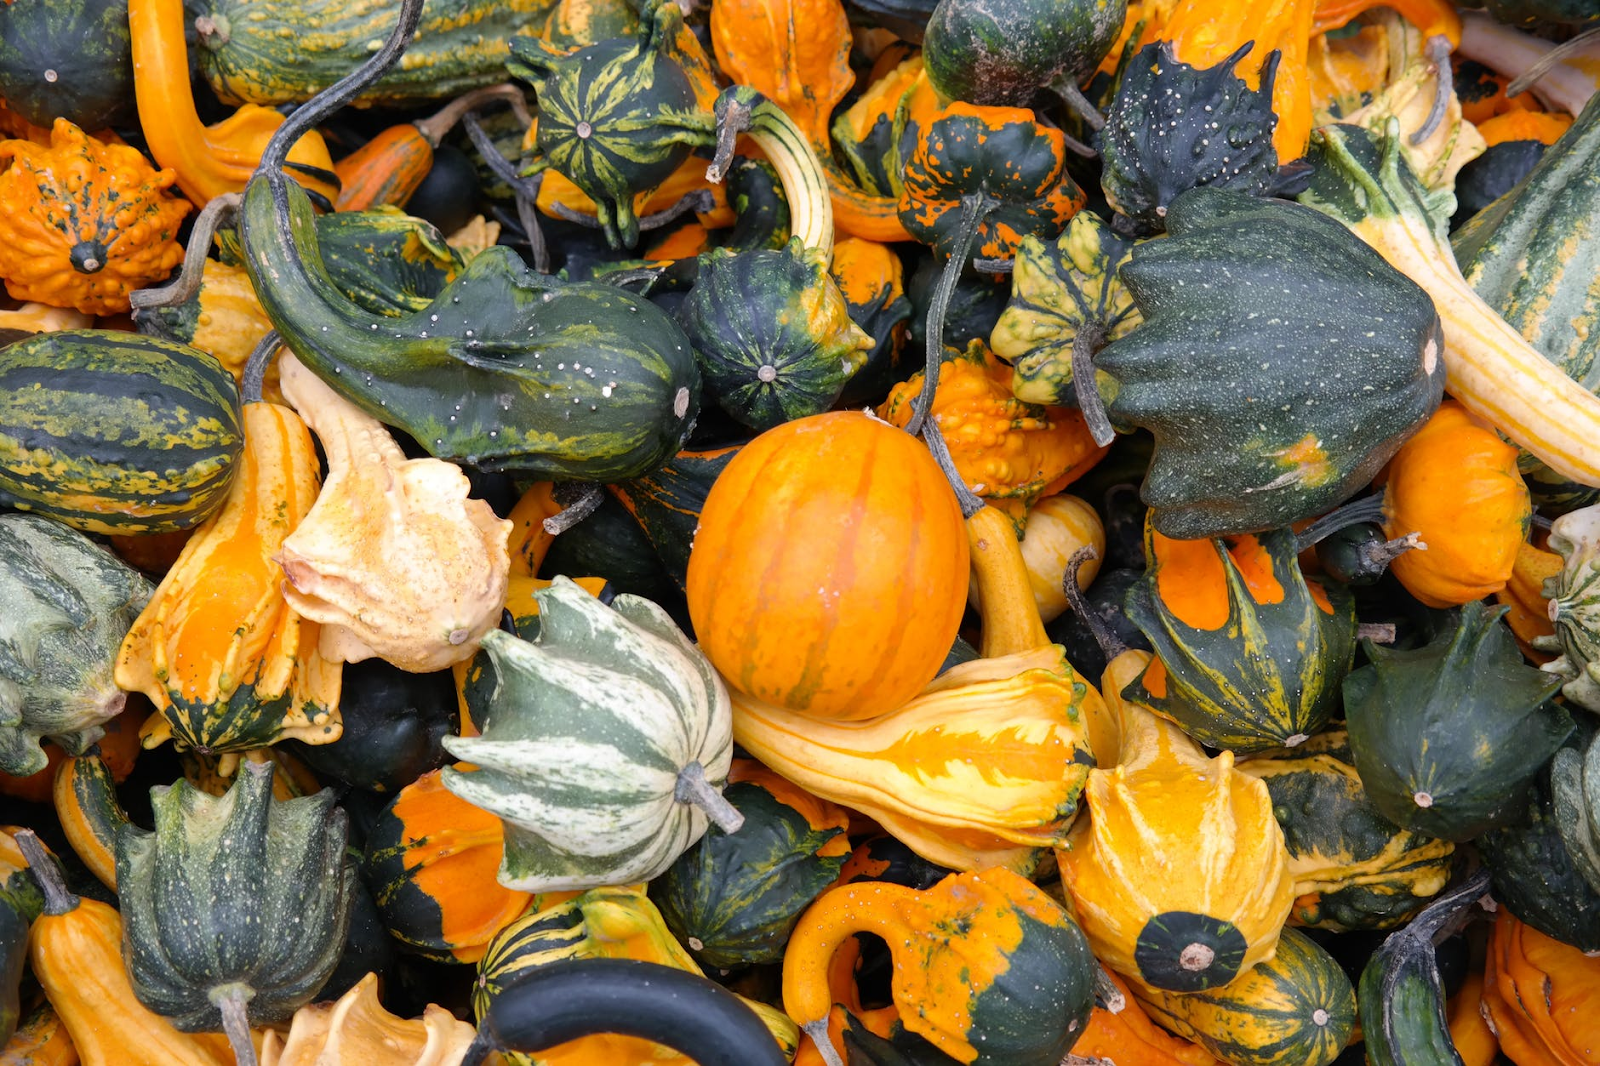 various kinds of squash